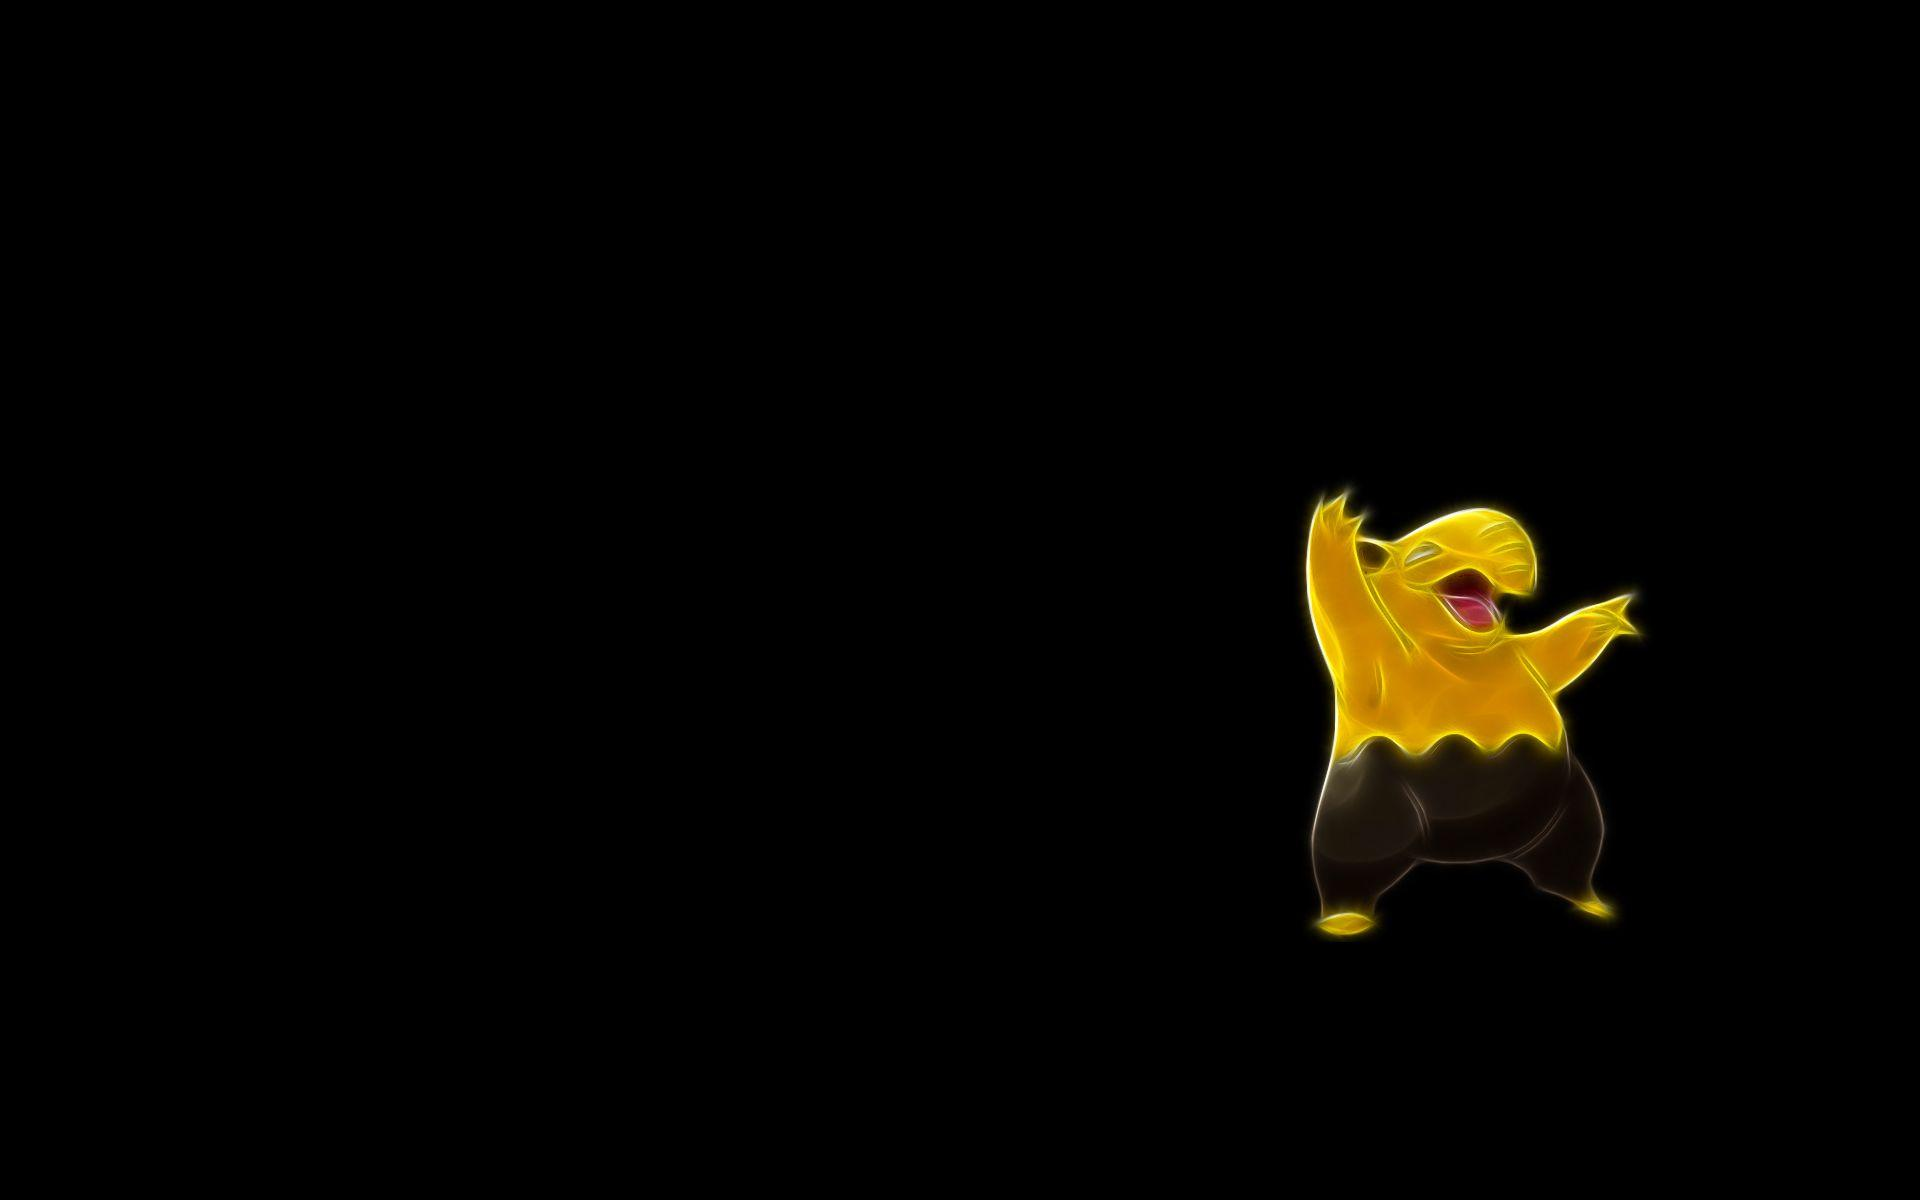 Download the Drowzee Wallpaper, Drowzee iPhone Wallpaper, Drowzee ...